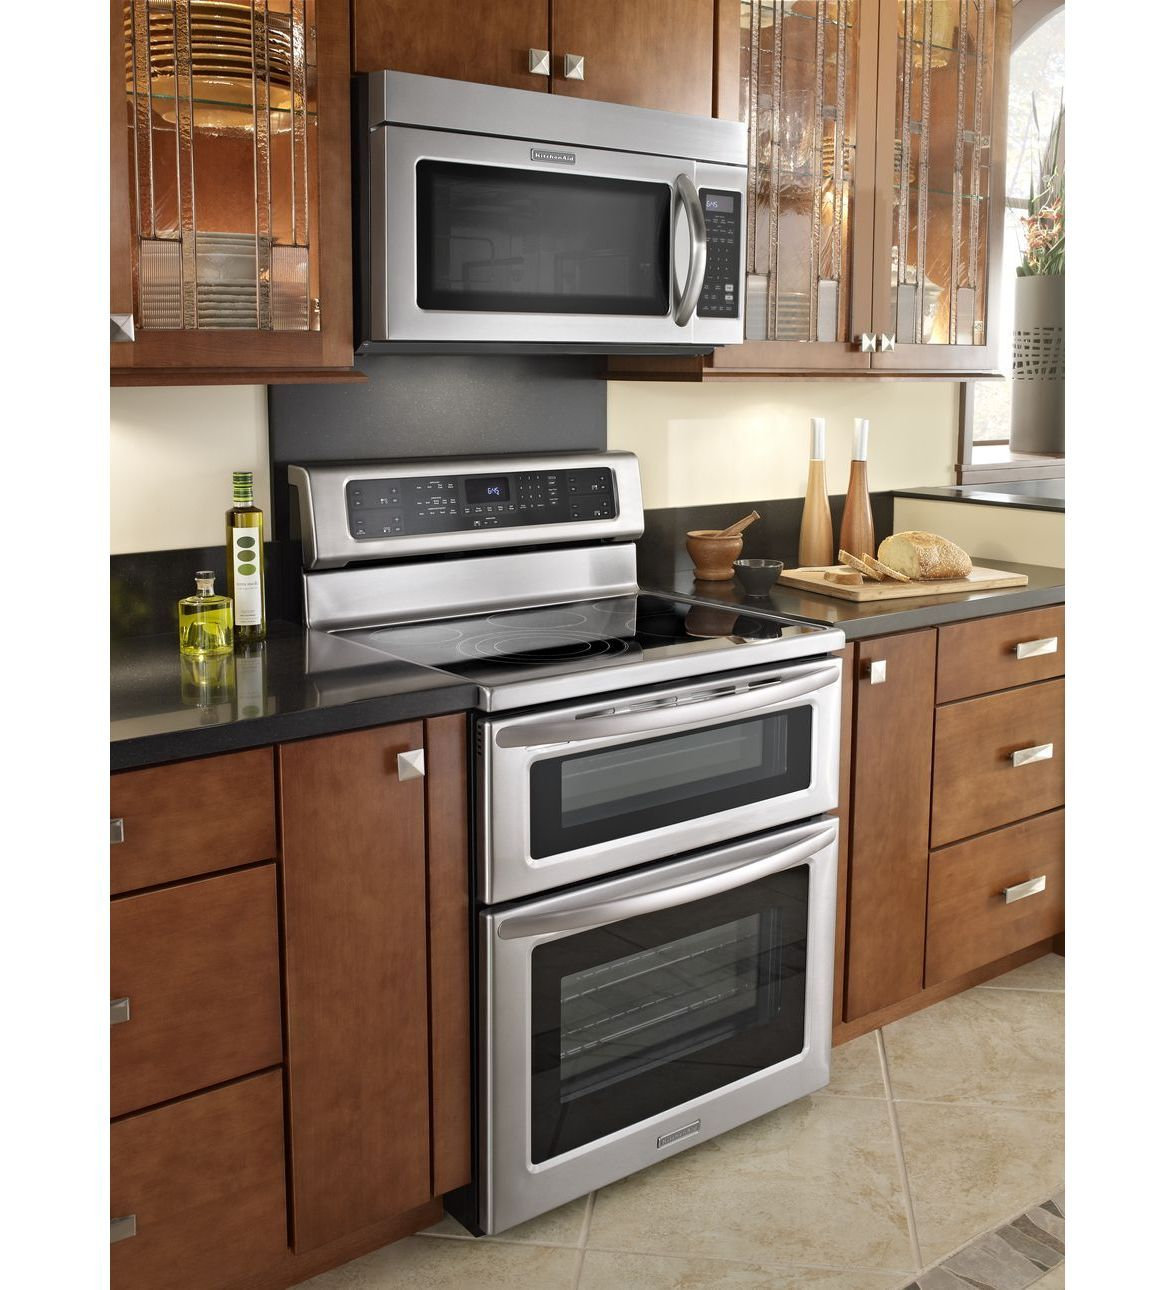 Kitchenaid 30 1000 Watt Microwave Hood Combination Oven